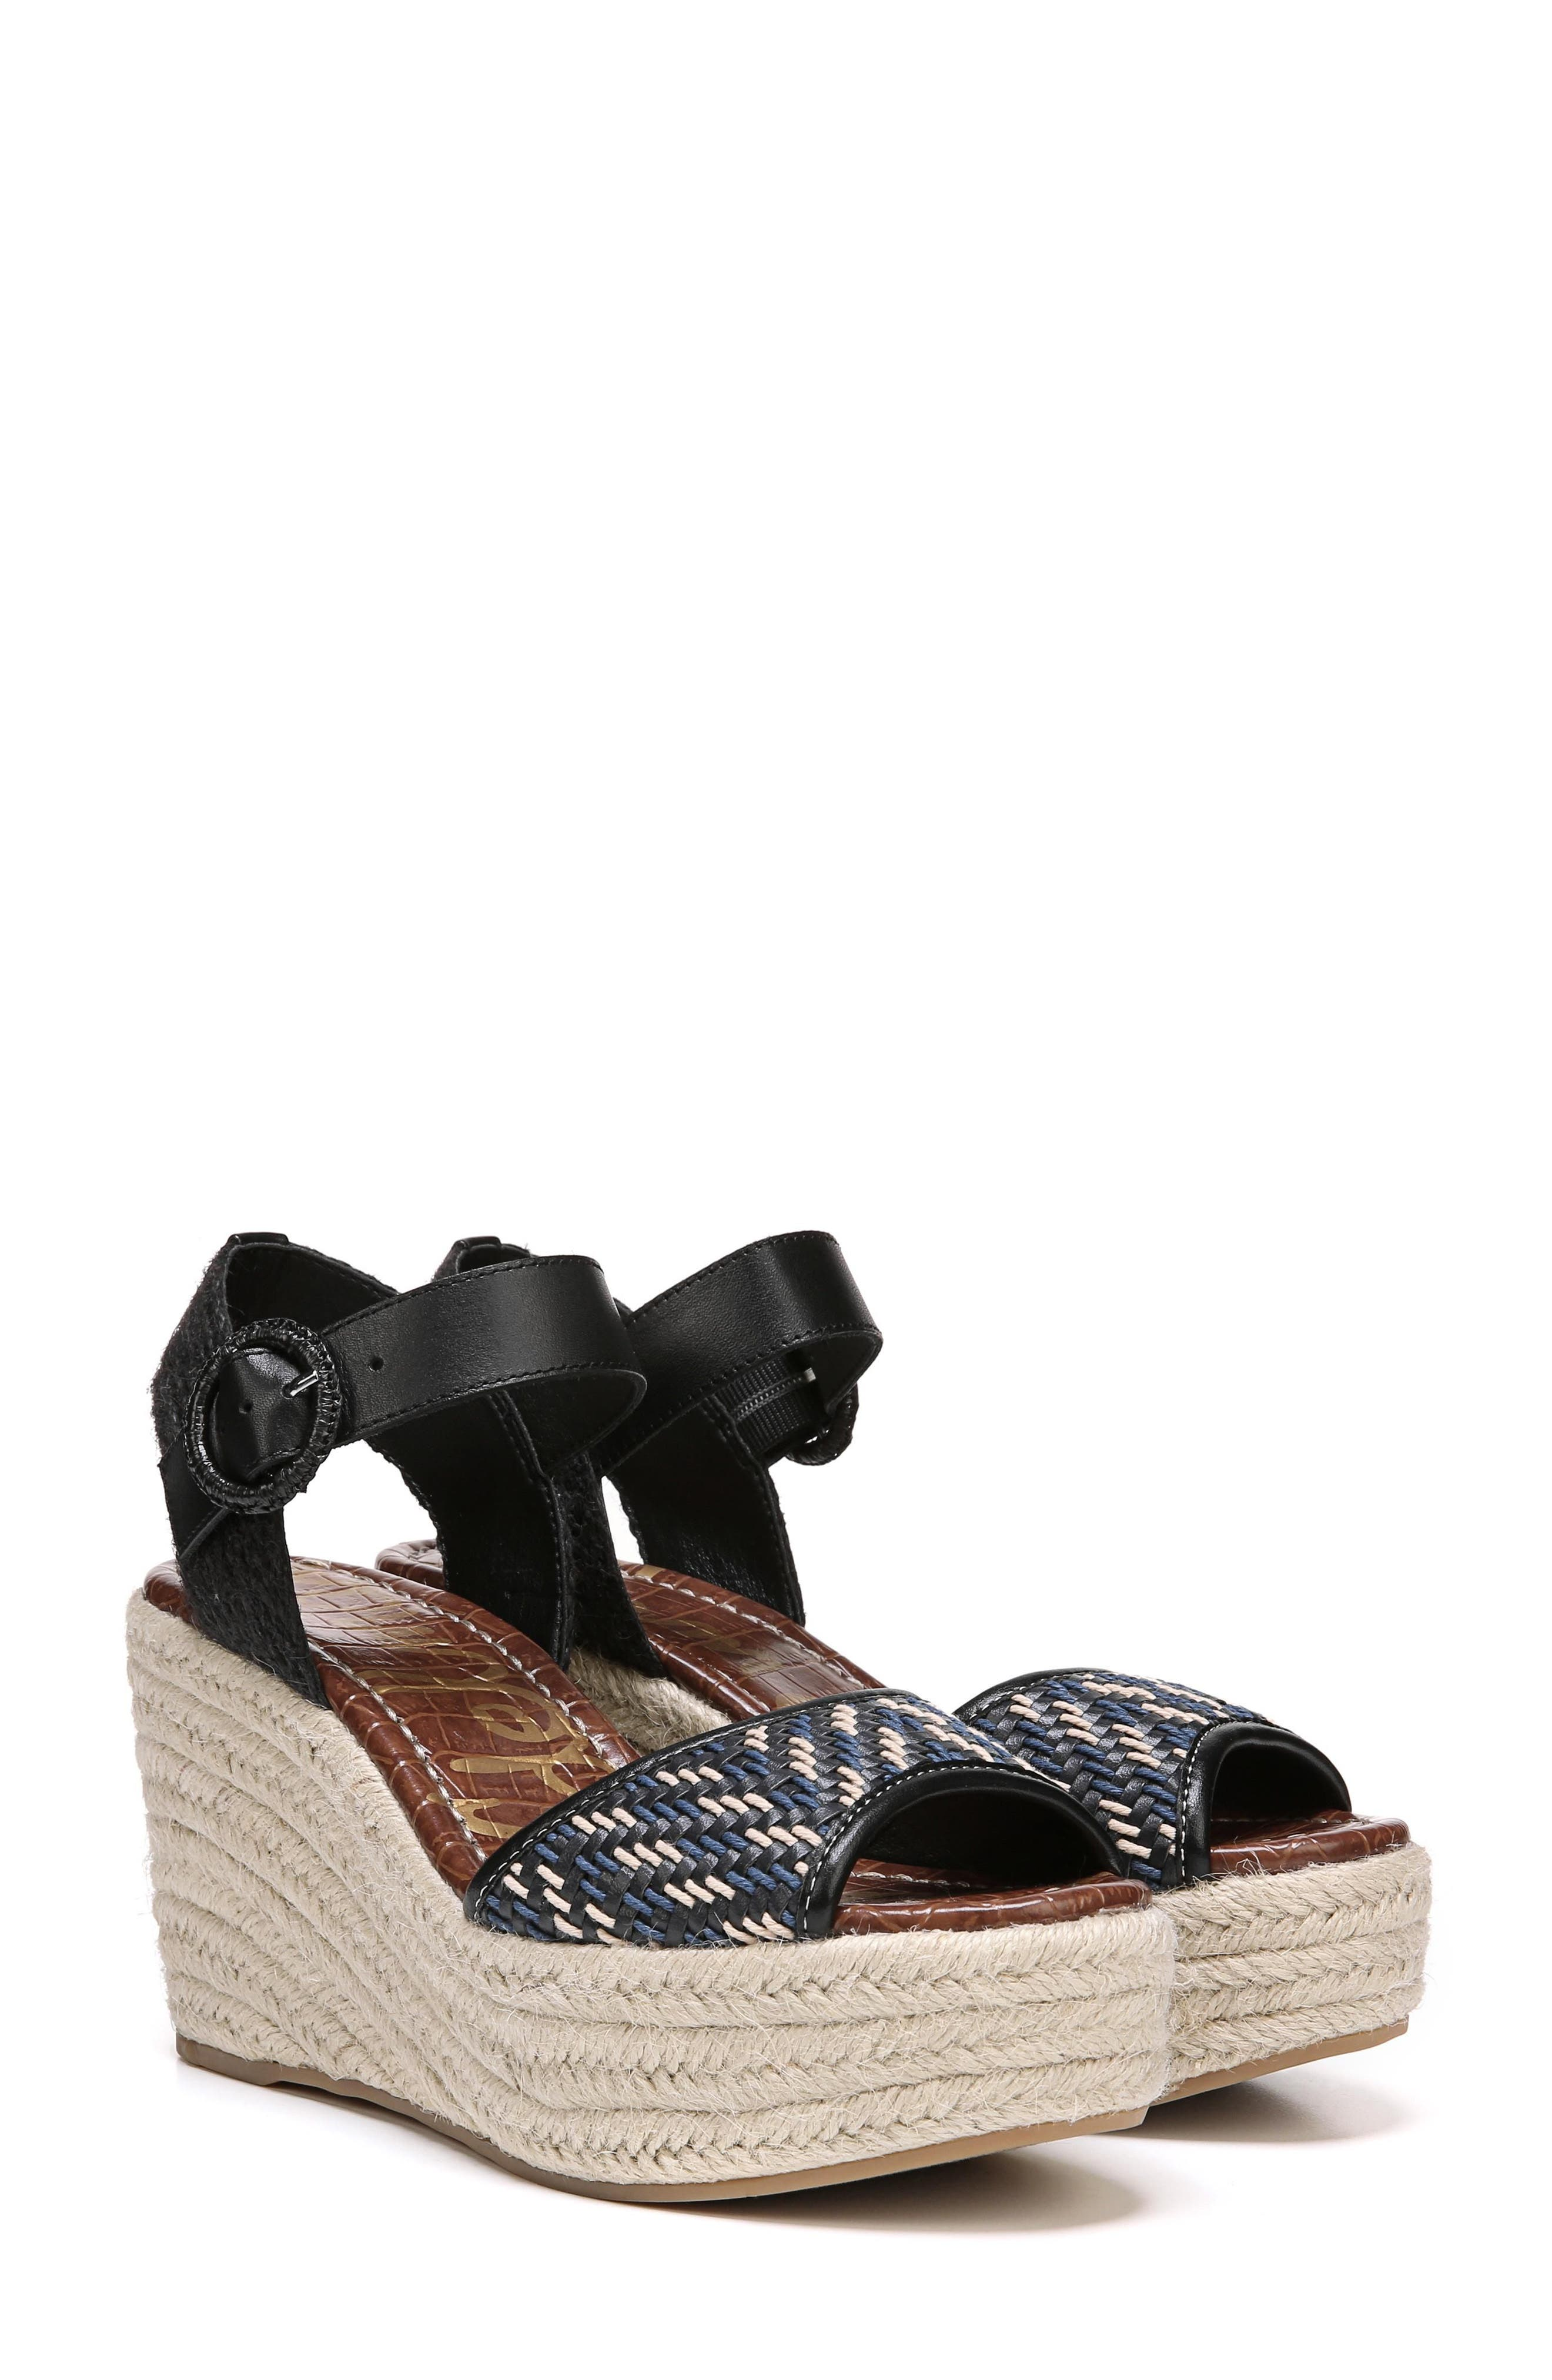 Dimitree Wedge,                         Main,                         color, NAVY/ BLACK